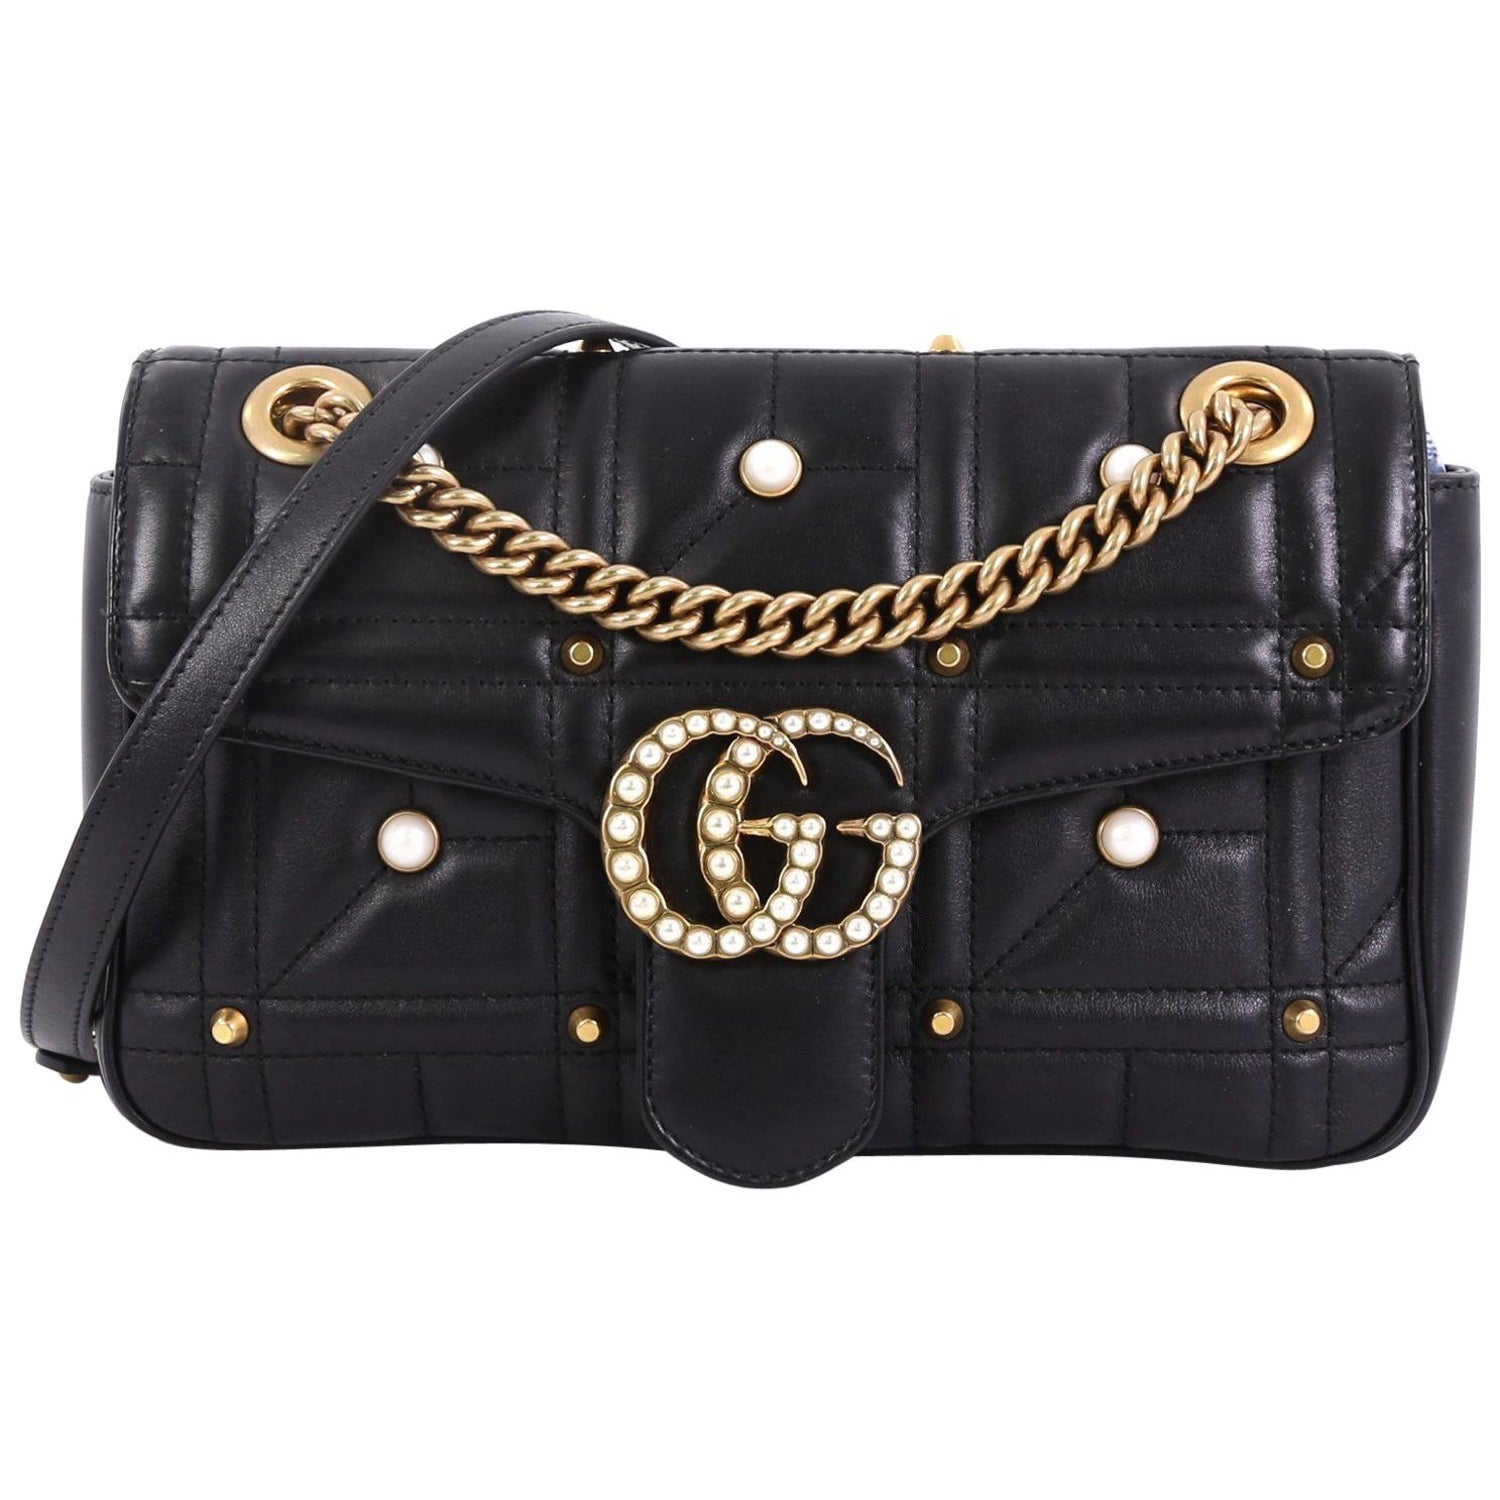 9b3ca90060b Gucci Pearly GG Marmont Flap Bag Embellished Matelasse Leather Small For  Sale at 1stdibs